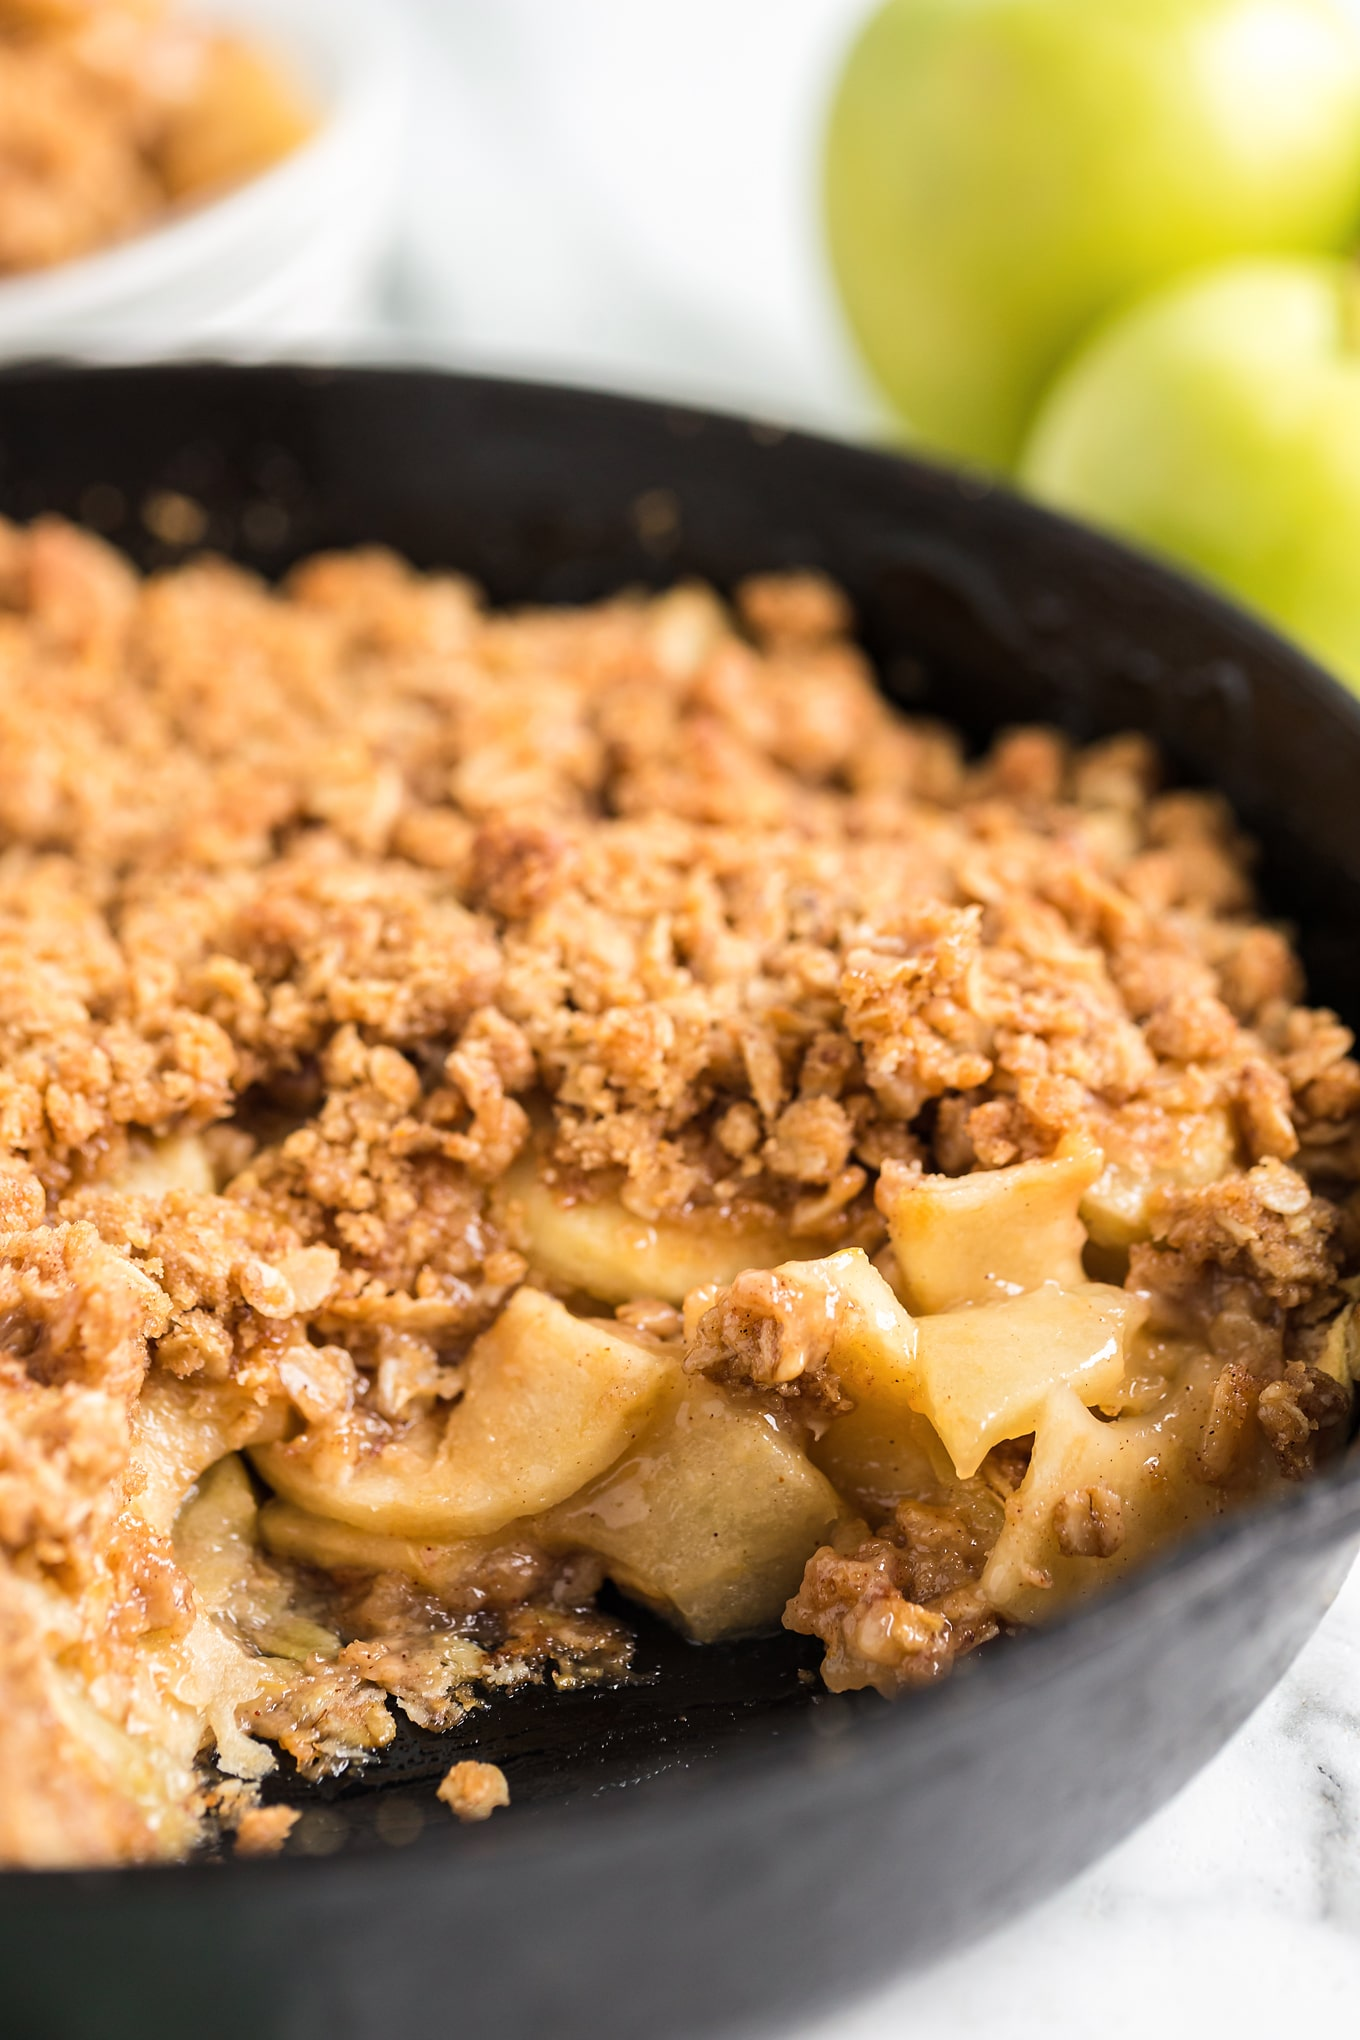 Delicious Homemade Apple Crisp Recipe